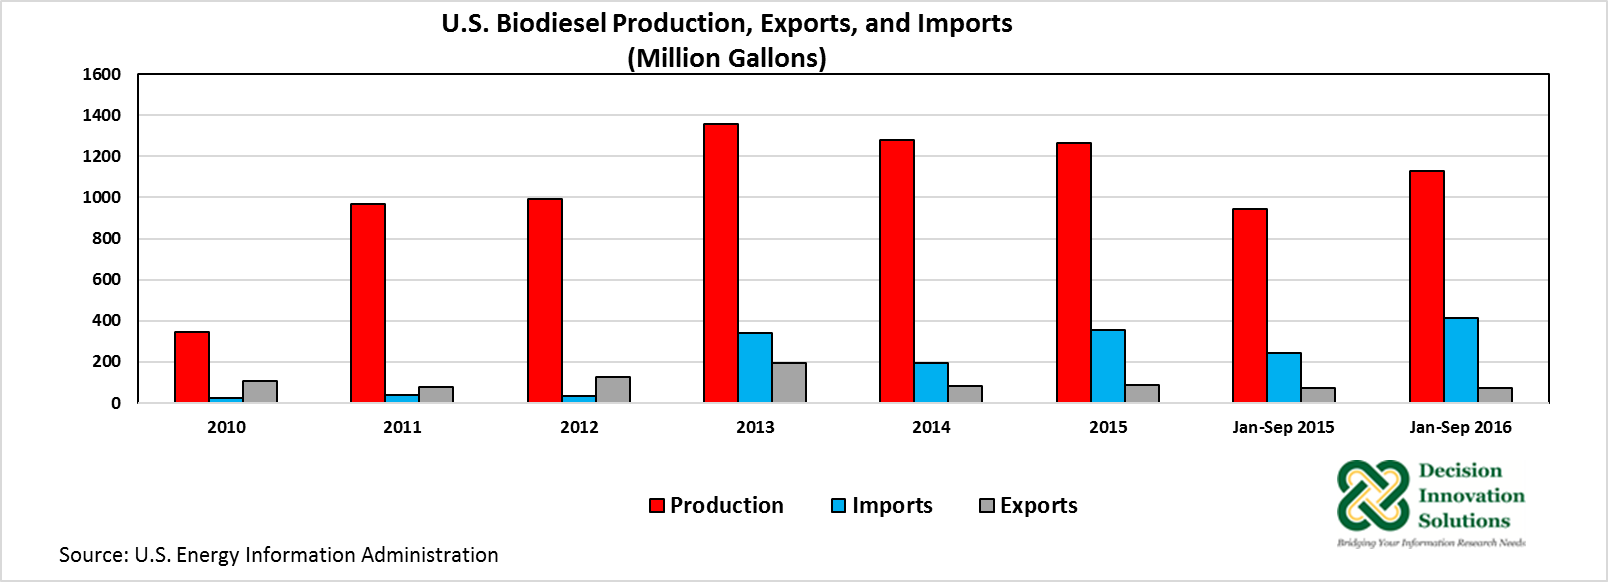 U.S. Biodiesel Production, Exports, and Imports